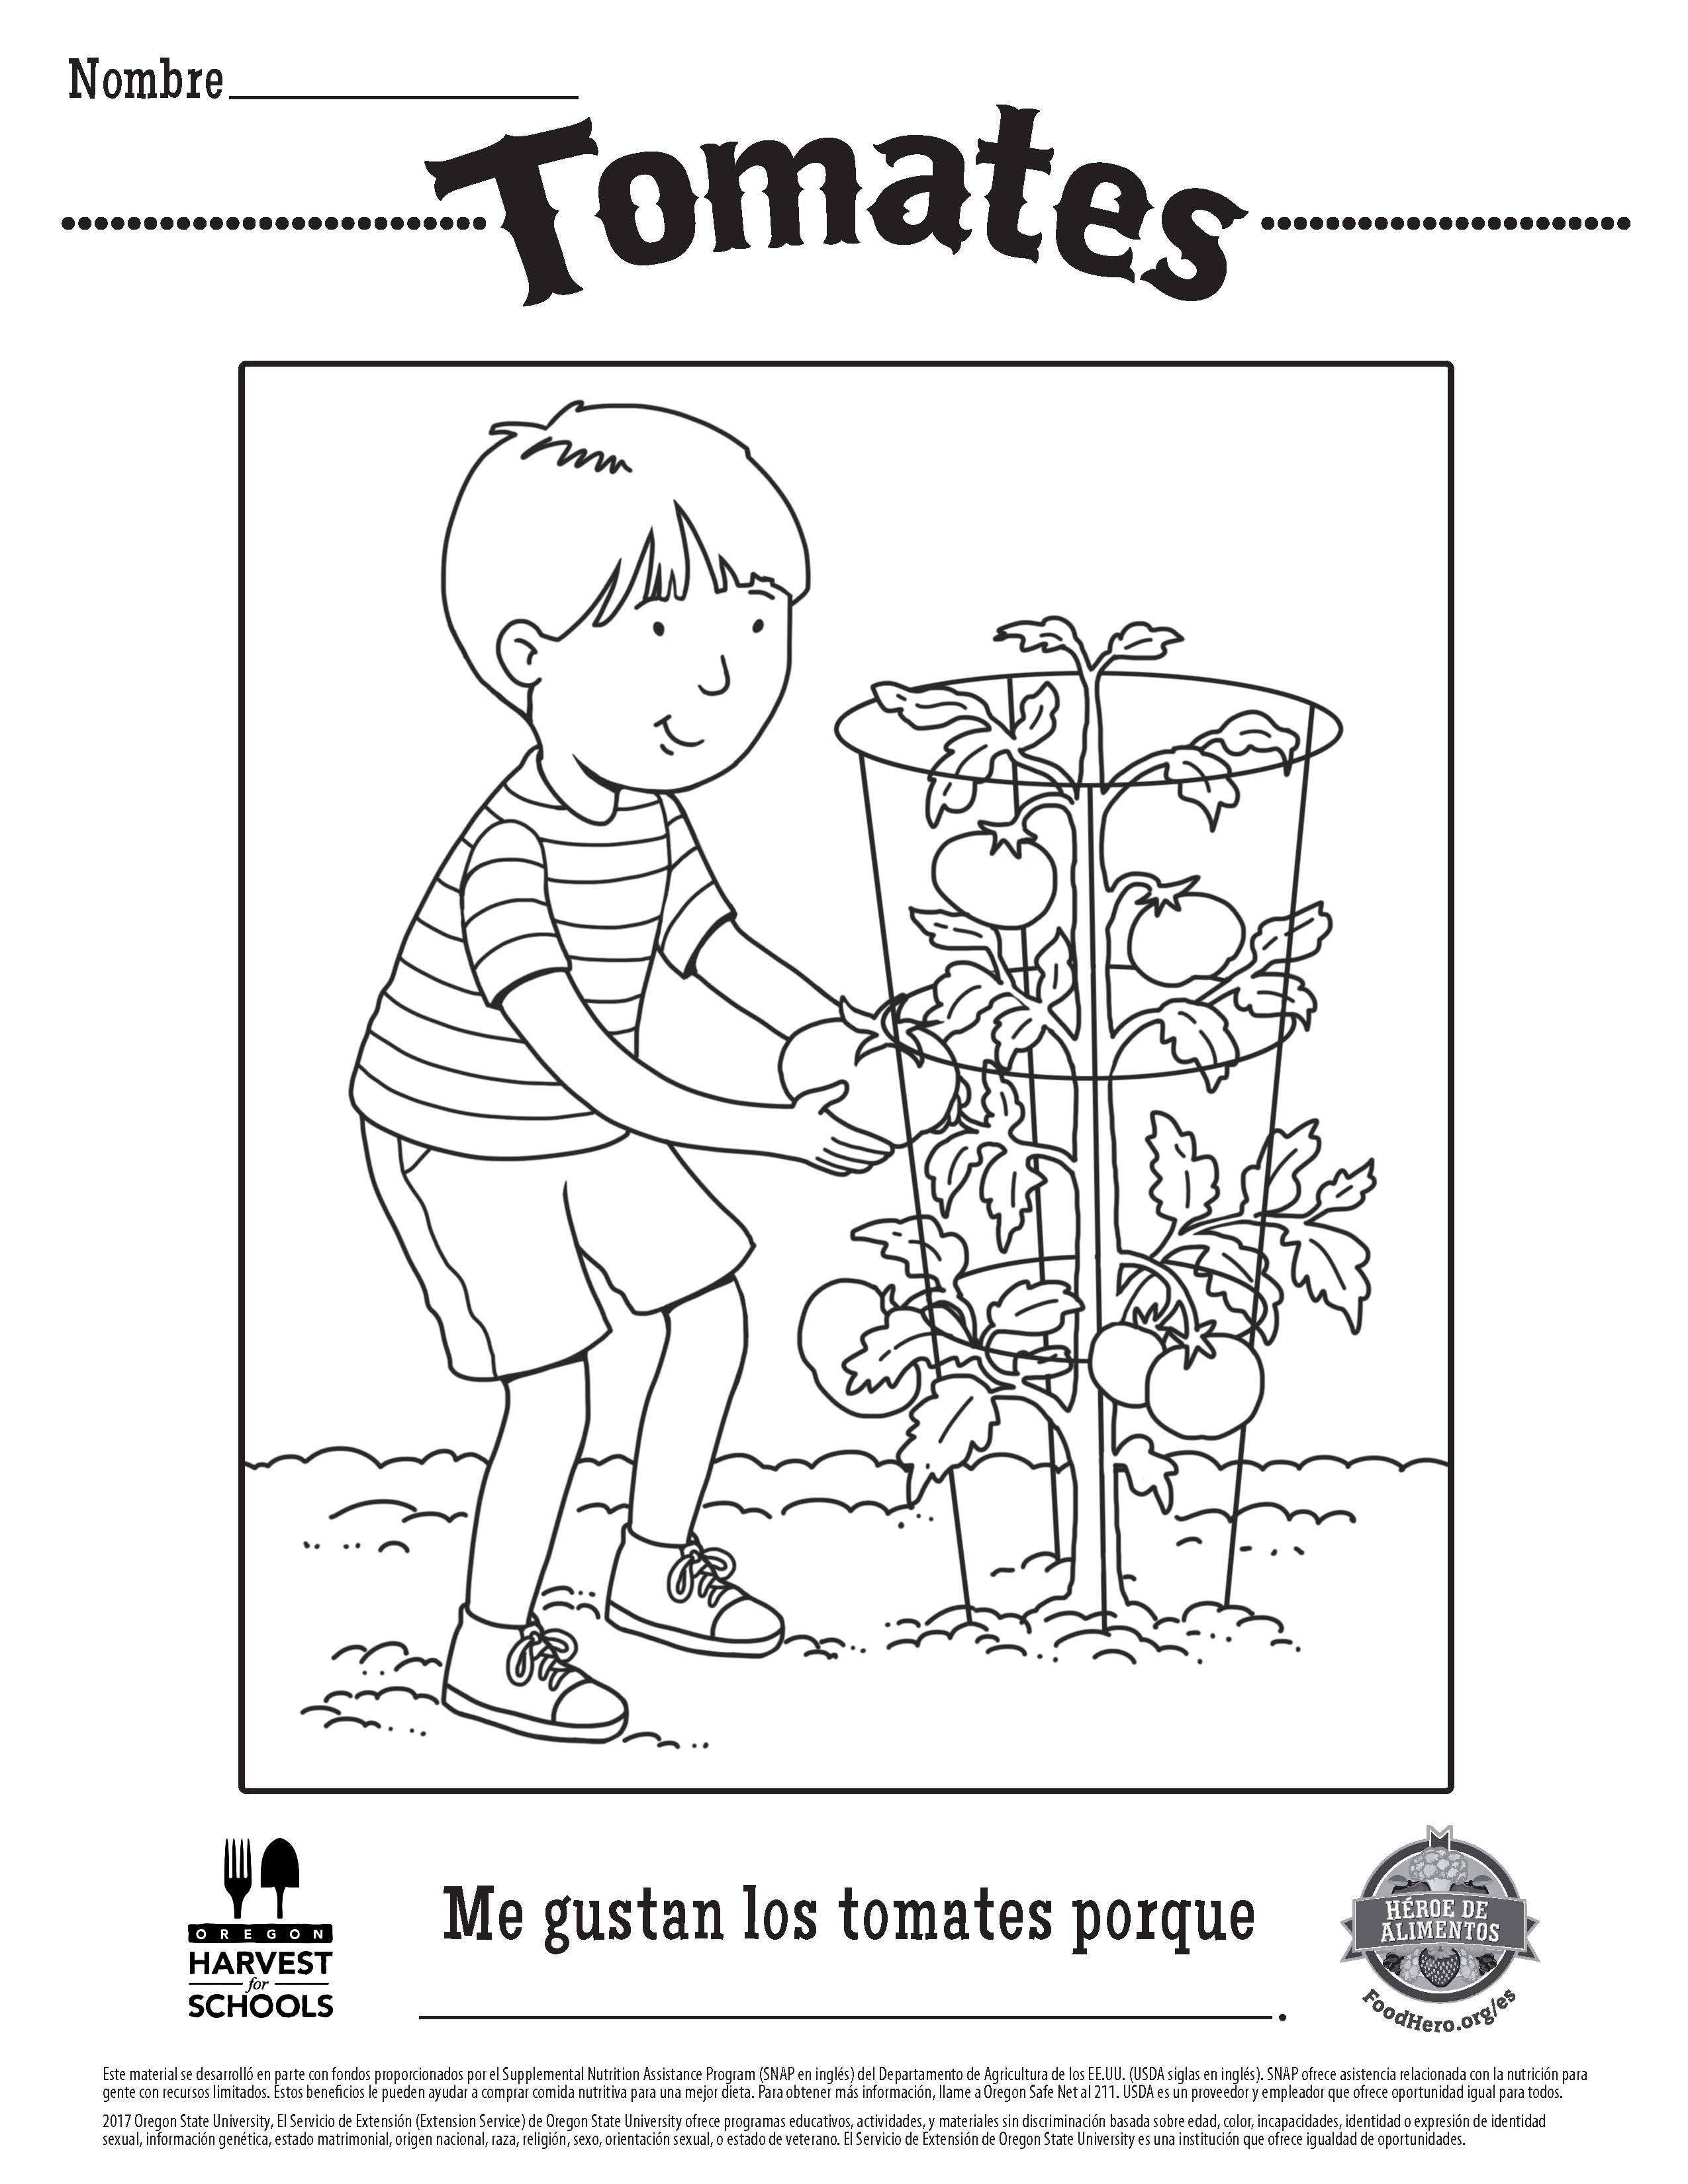 Tomatoes in Spanish Free Printable Children\'s Coloring Sheet Food ...